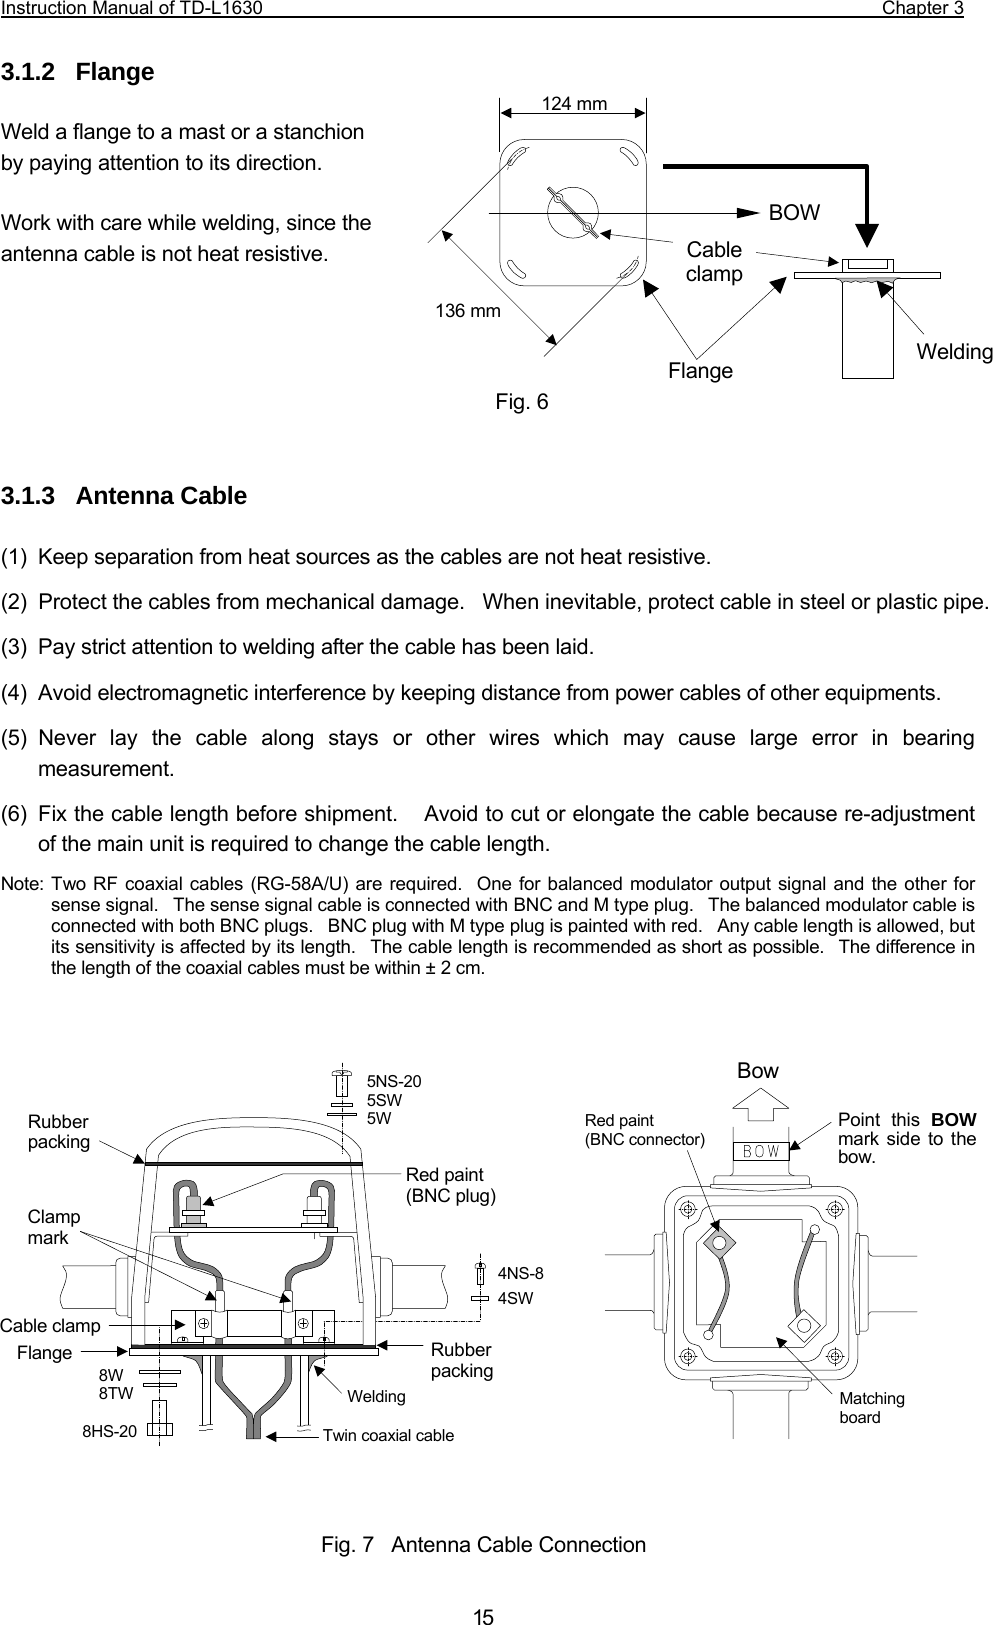 Mitsubishi Electric Tokki Systems 9jktd L1630 Scanning Receiver User L16 30 Wiring Diagram Instruction Manual Of Td Chapter 3 15312 Flange Weld A To